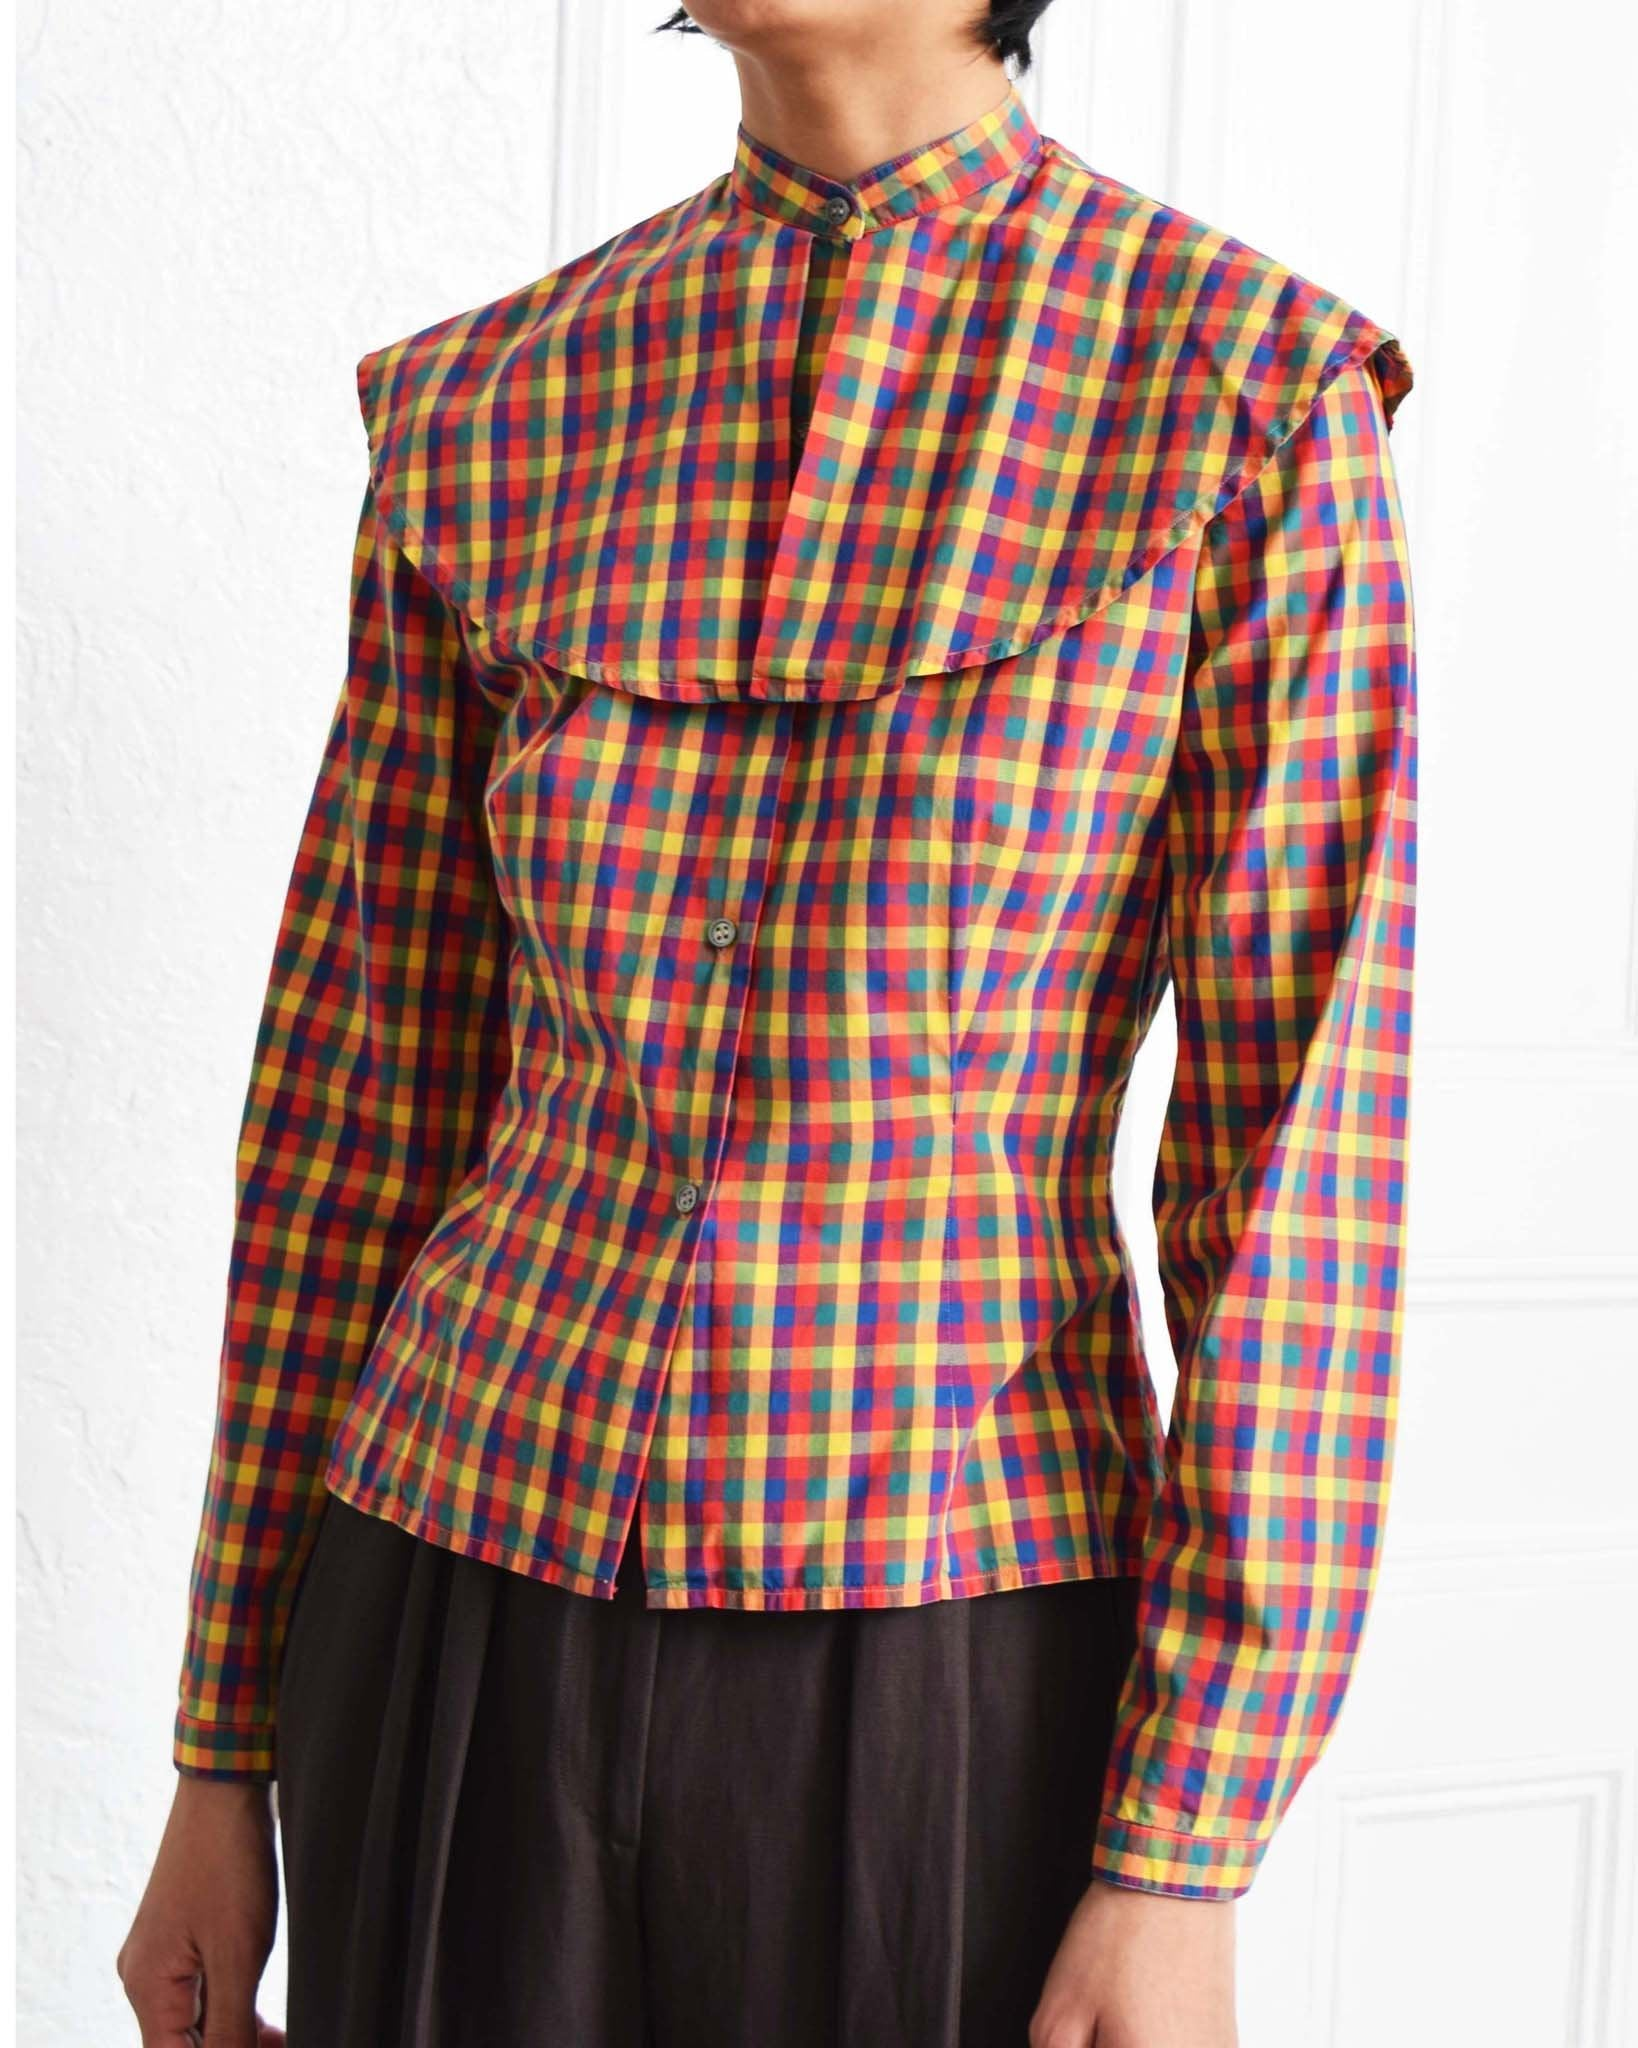 Vintage Perry Ellis Check Blouse